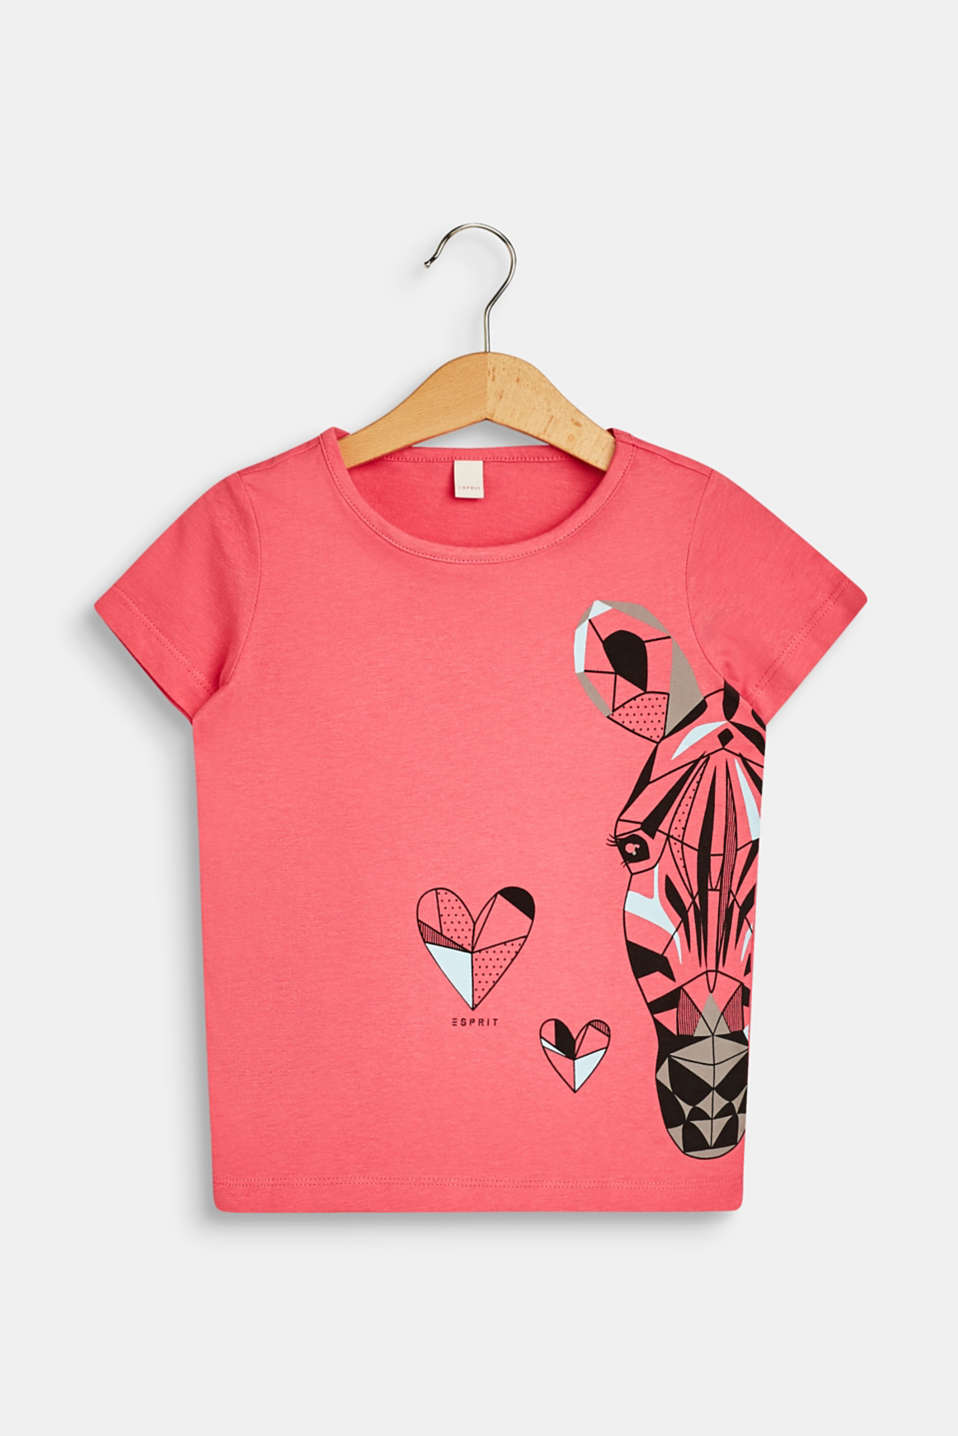 Esprit - T-shirt with zebra print, 100% cotton